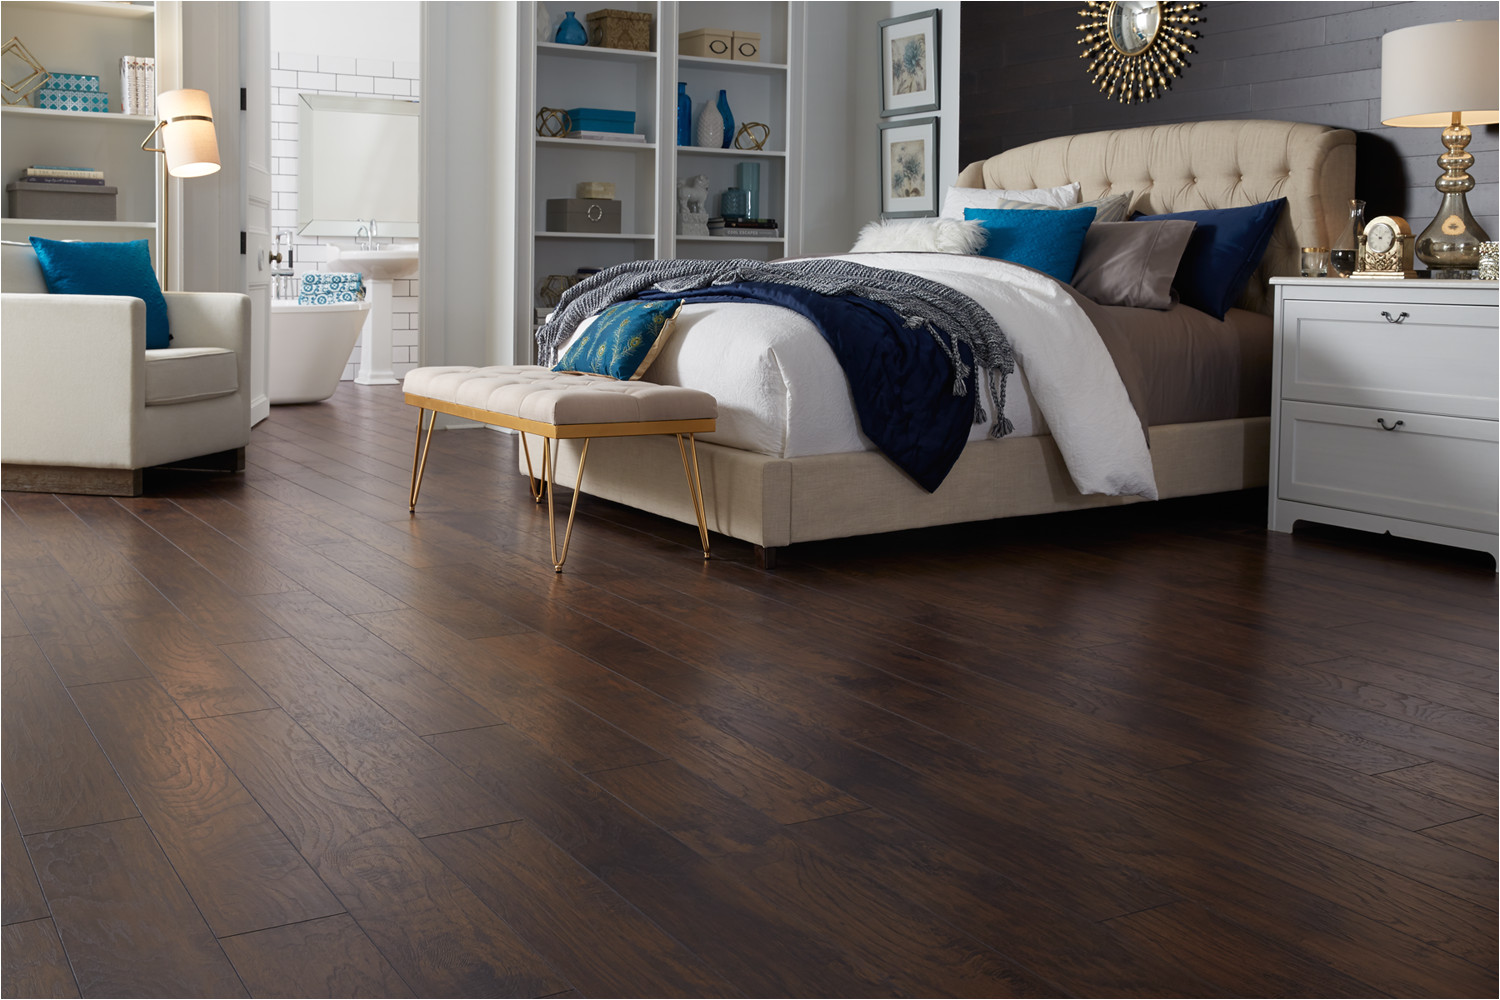 commonwealth hickory dream home ultra x2o laminate lumber liquidators laminate flooring flooring ideas